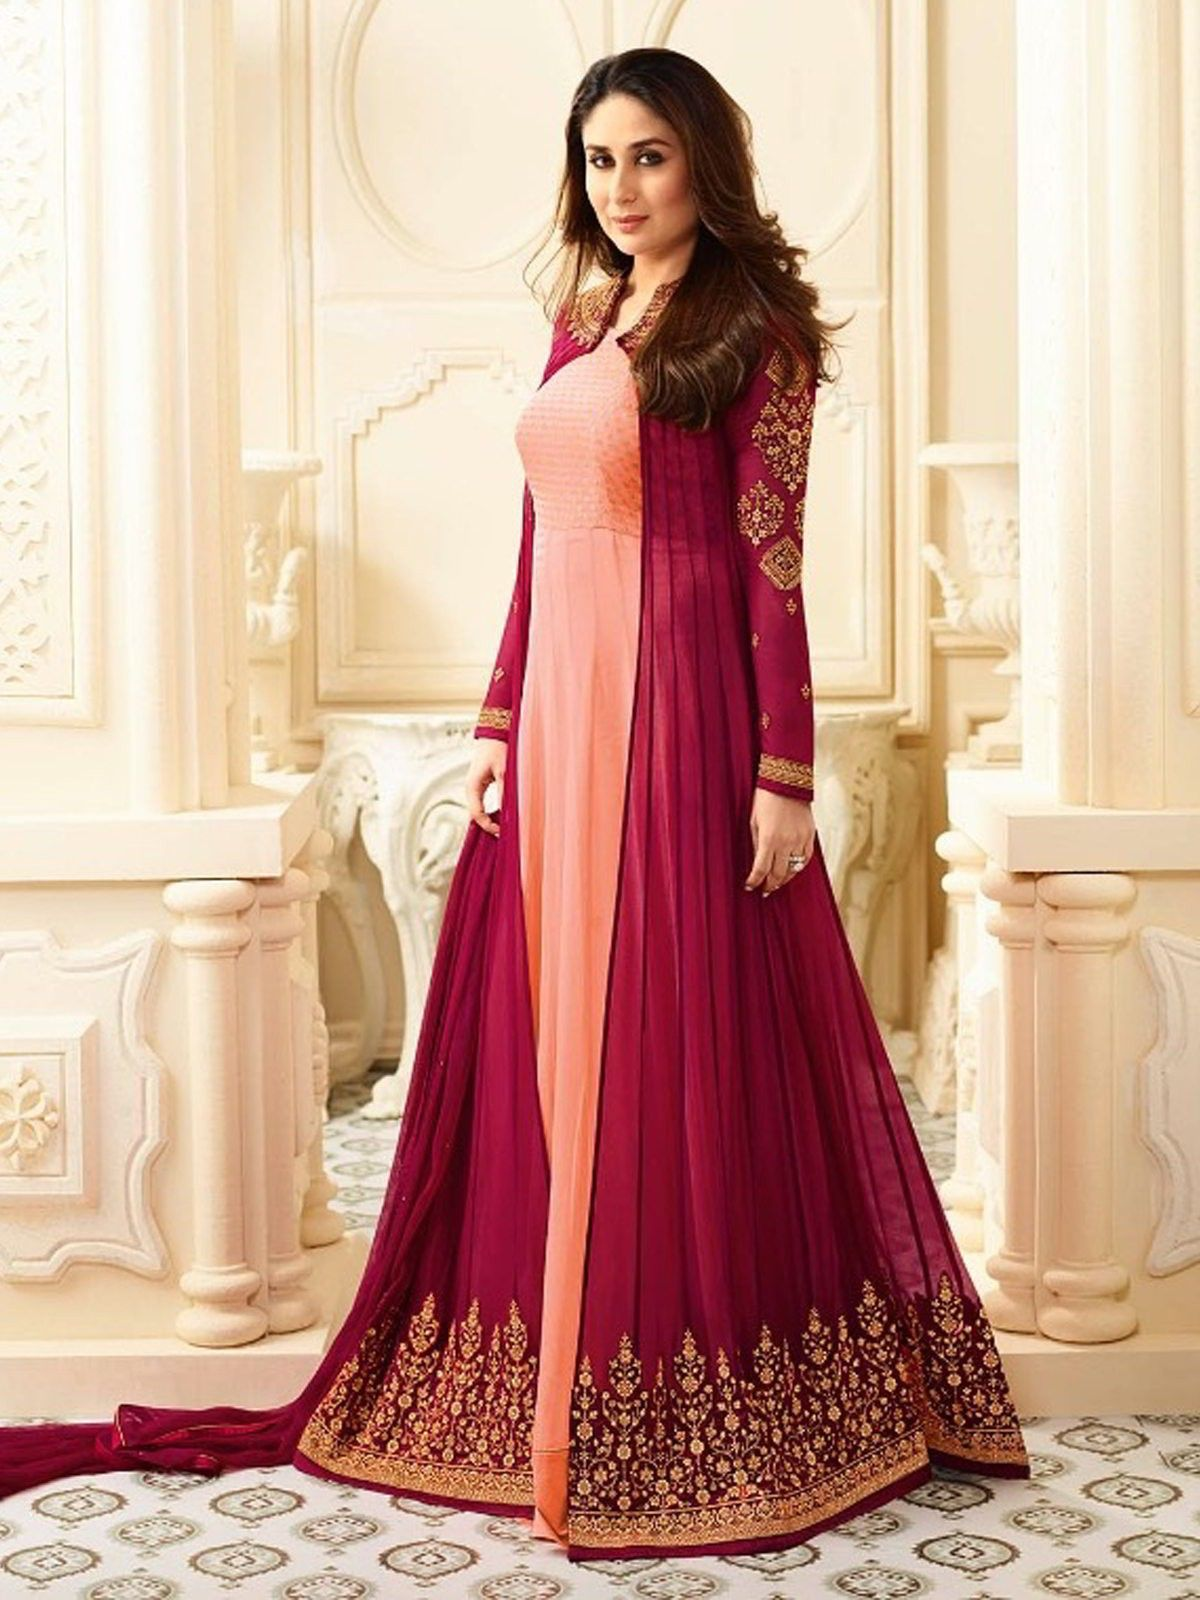 232e613f58 Bollywood Pink and Majenta color Salwar Kameez in Faux Georgette fabric  with Abaya, Anarkali Embroidered, Thread work